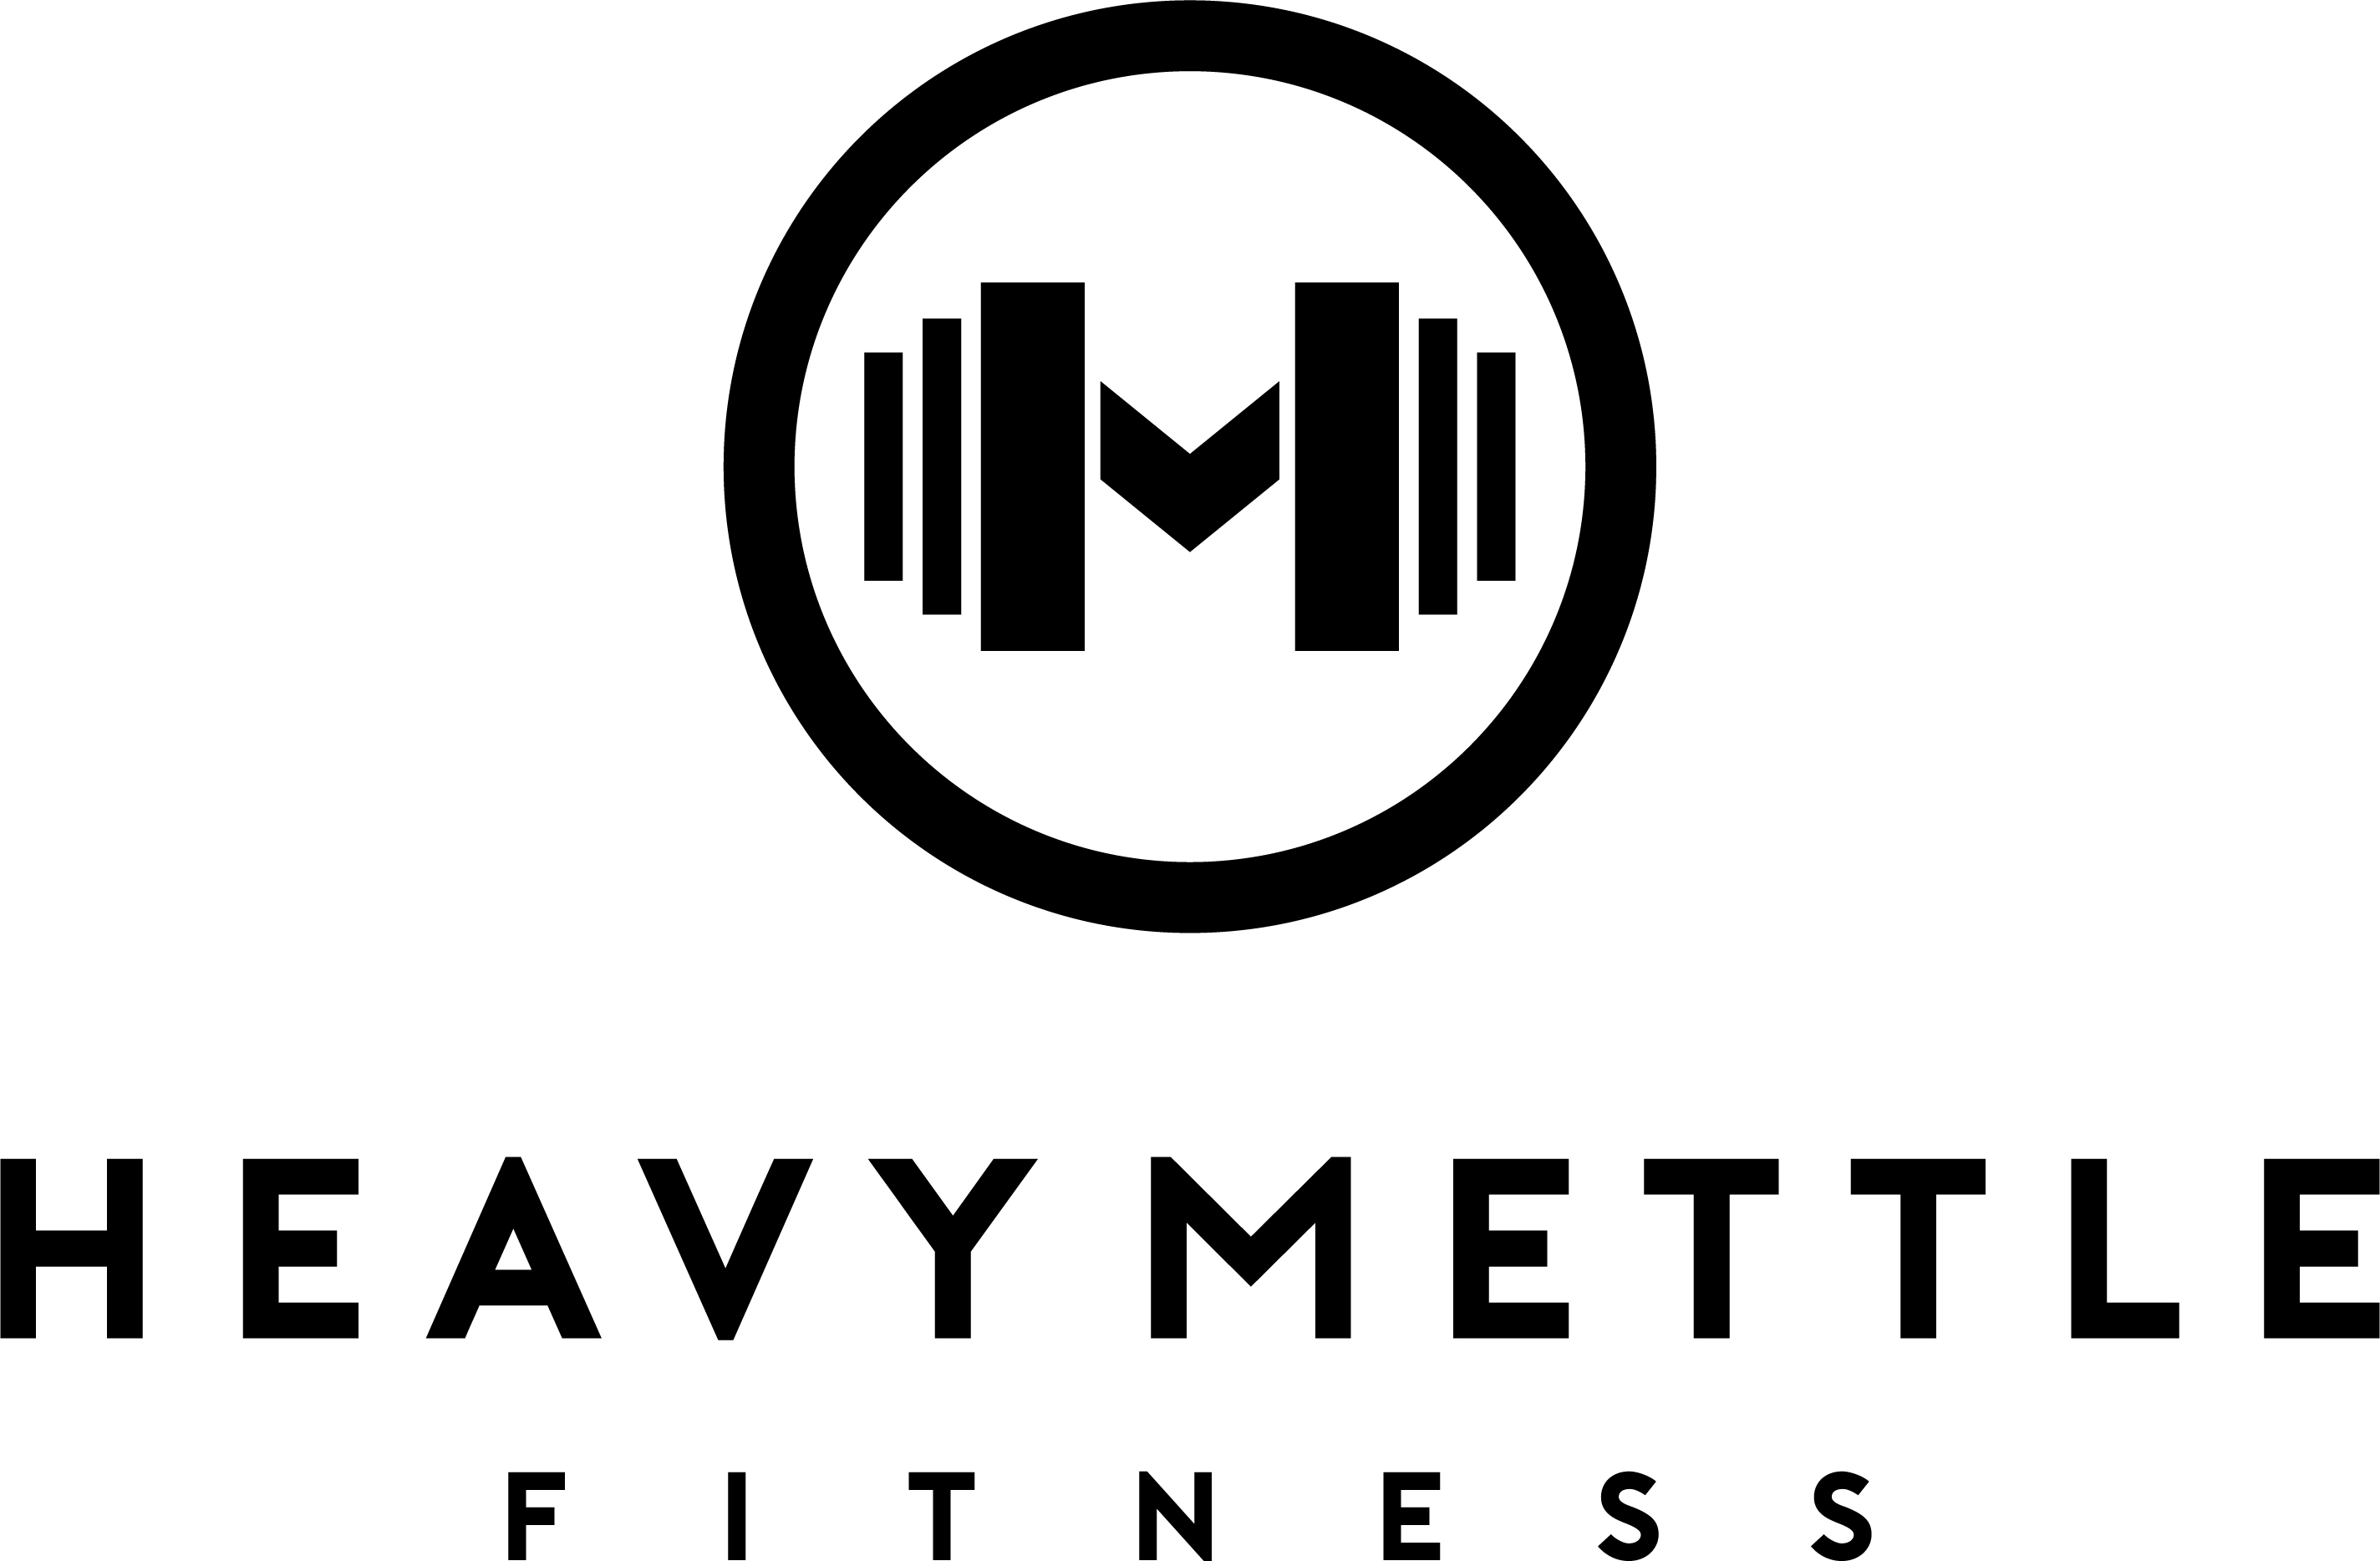 Heavy Mettle Fitness Offers Exceptional Personal Training in Austin